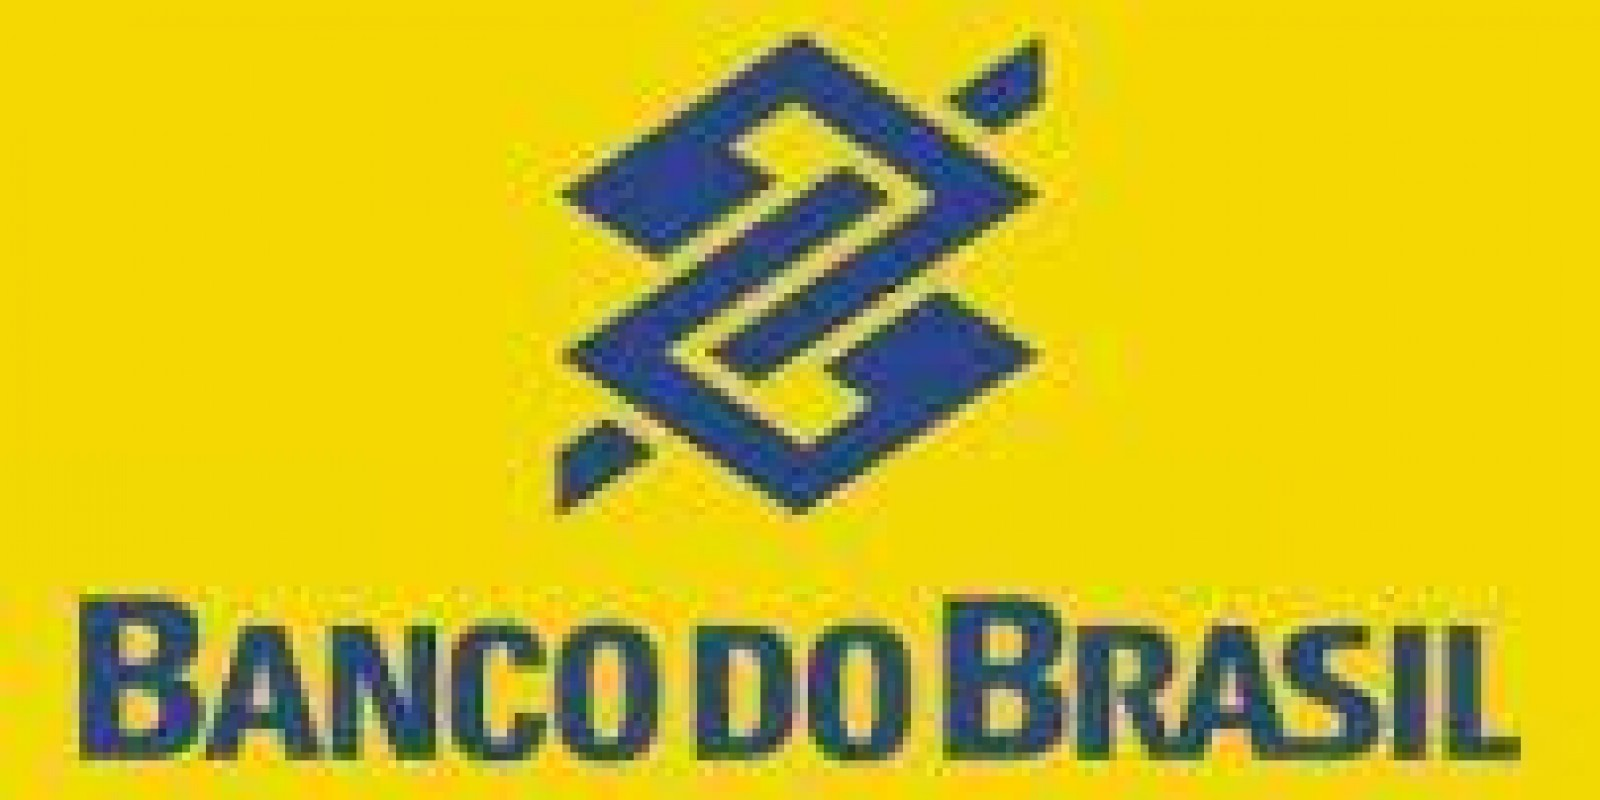 Contraf-CUT disponibiliza no site ACT do Banco do Brasil assinado